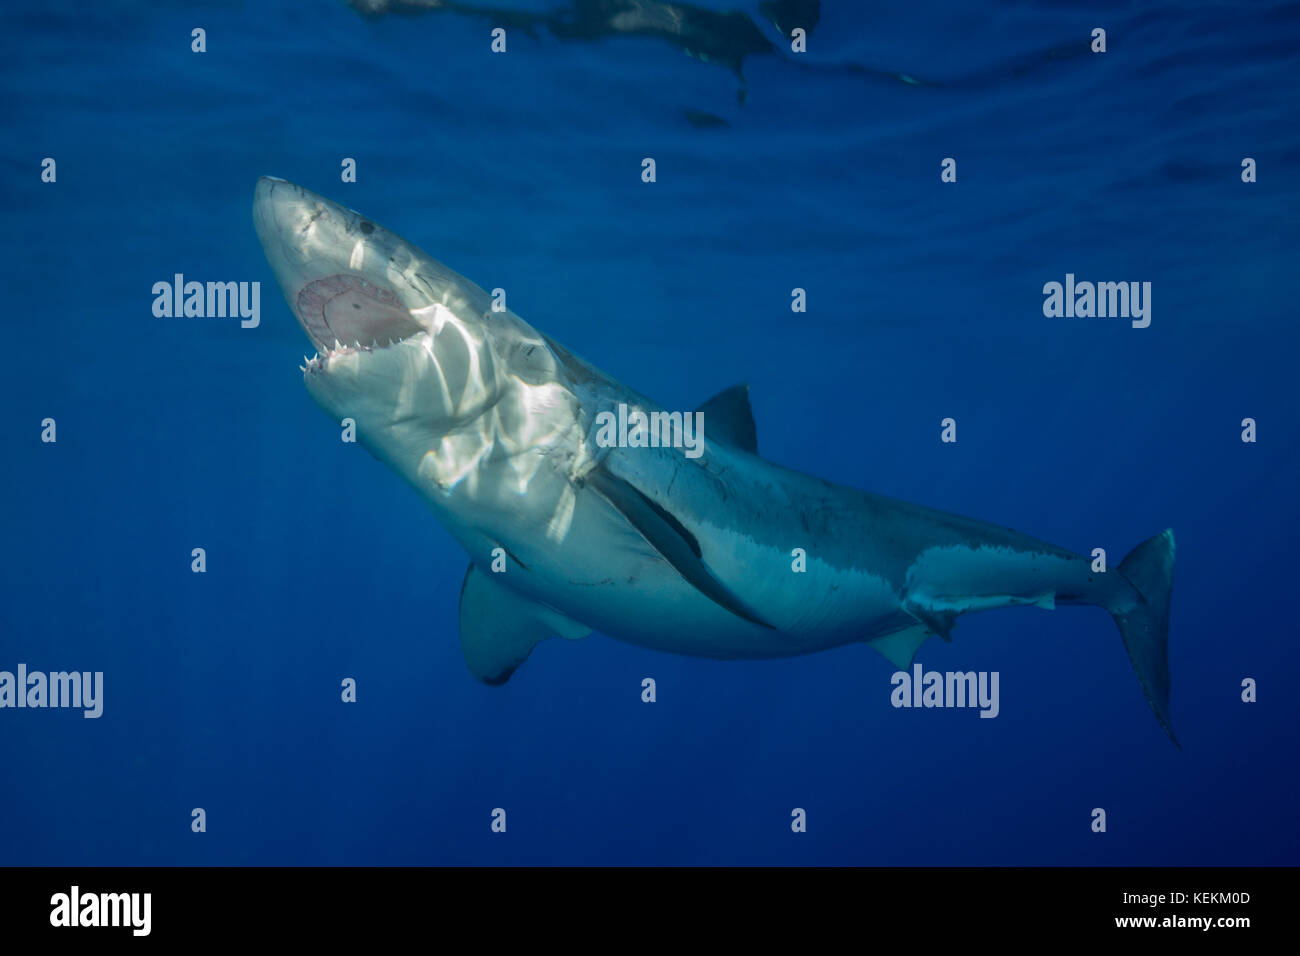 Great White Shark Carcharodon Carcharias Guadalupe Island Mexico